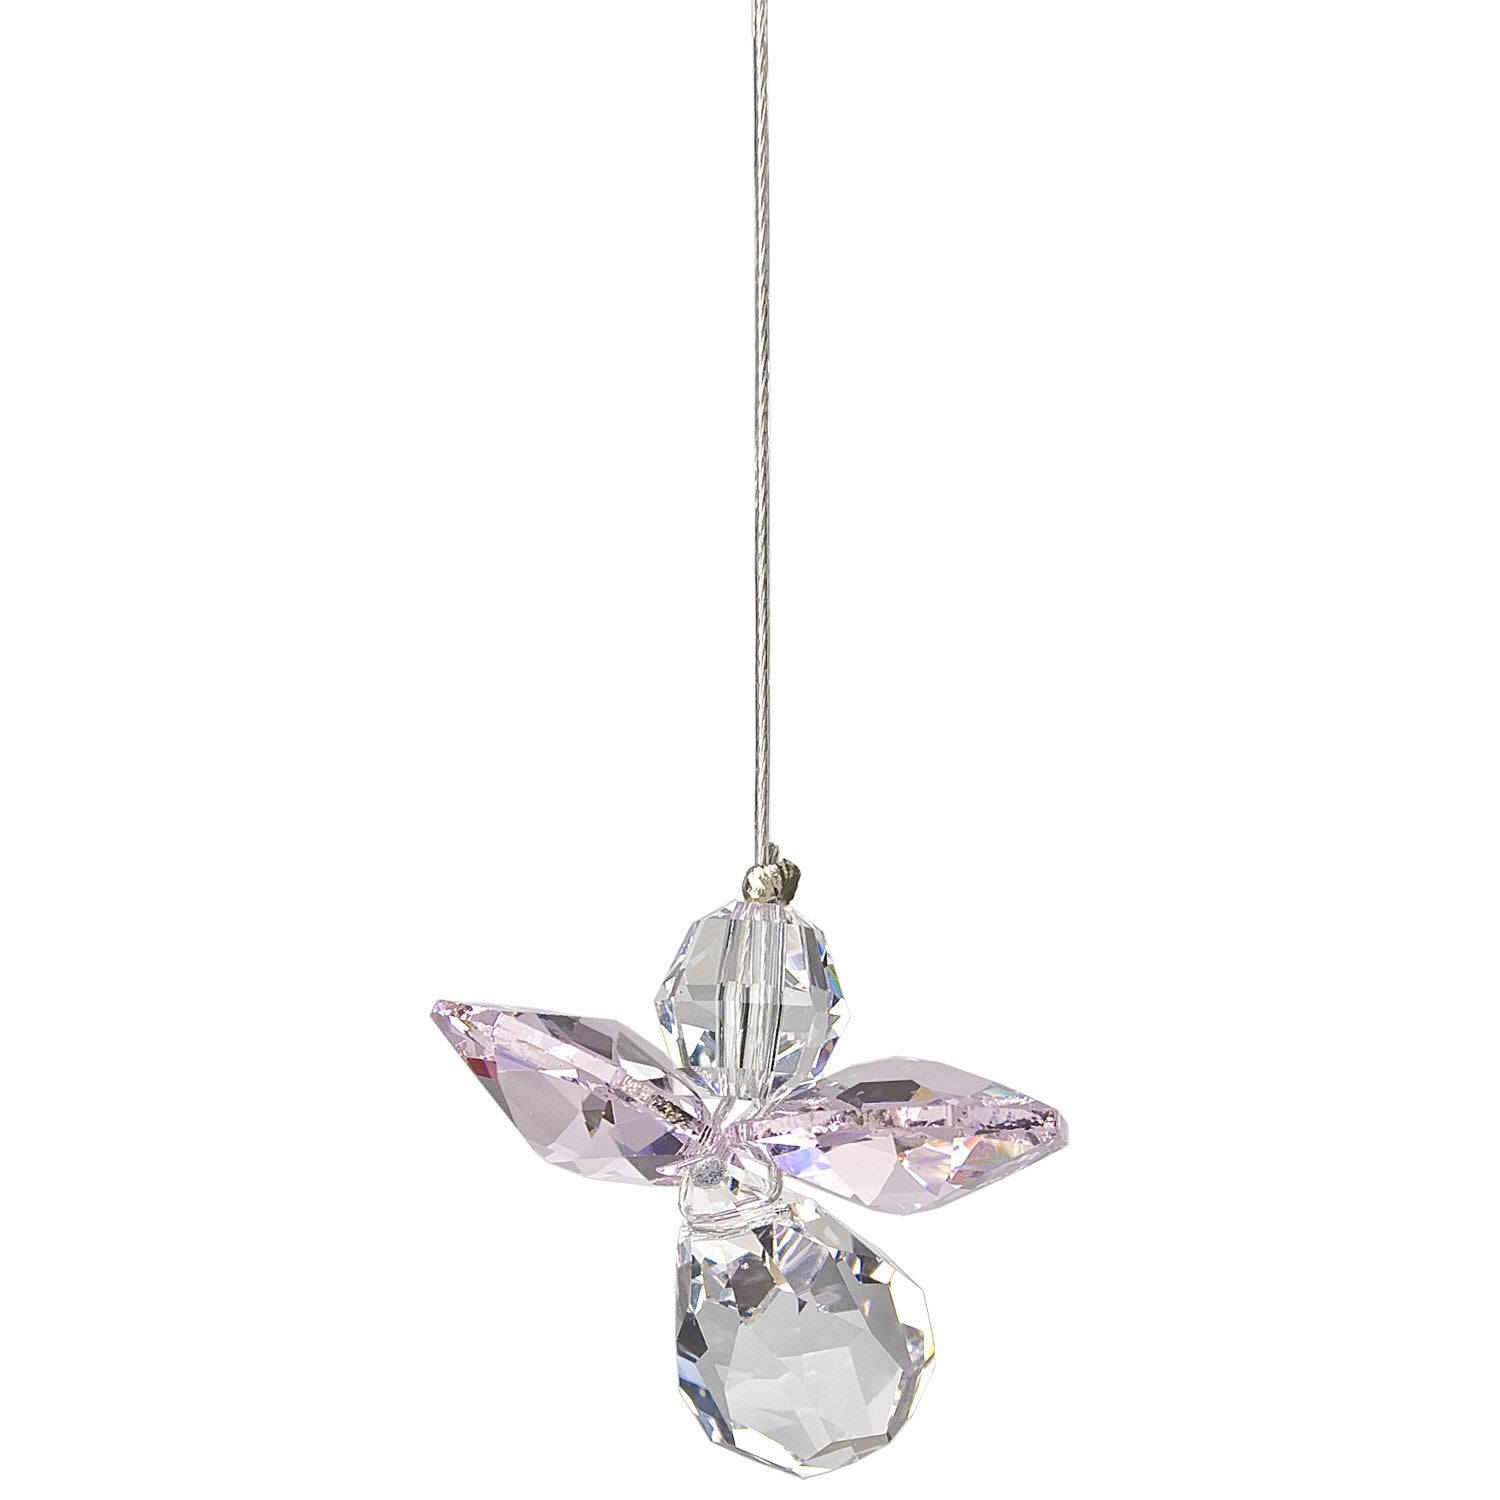 Crystal Guardian Angel Suncatcher - Rose (October) alternate product image